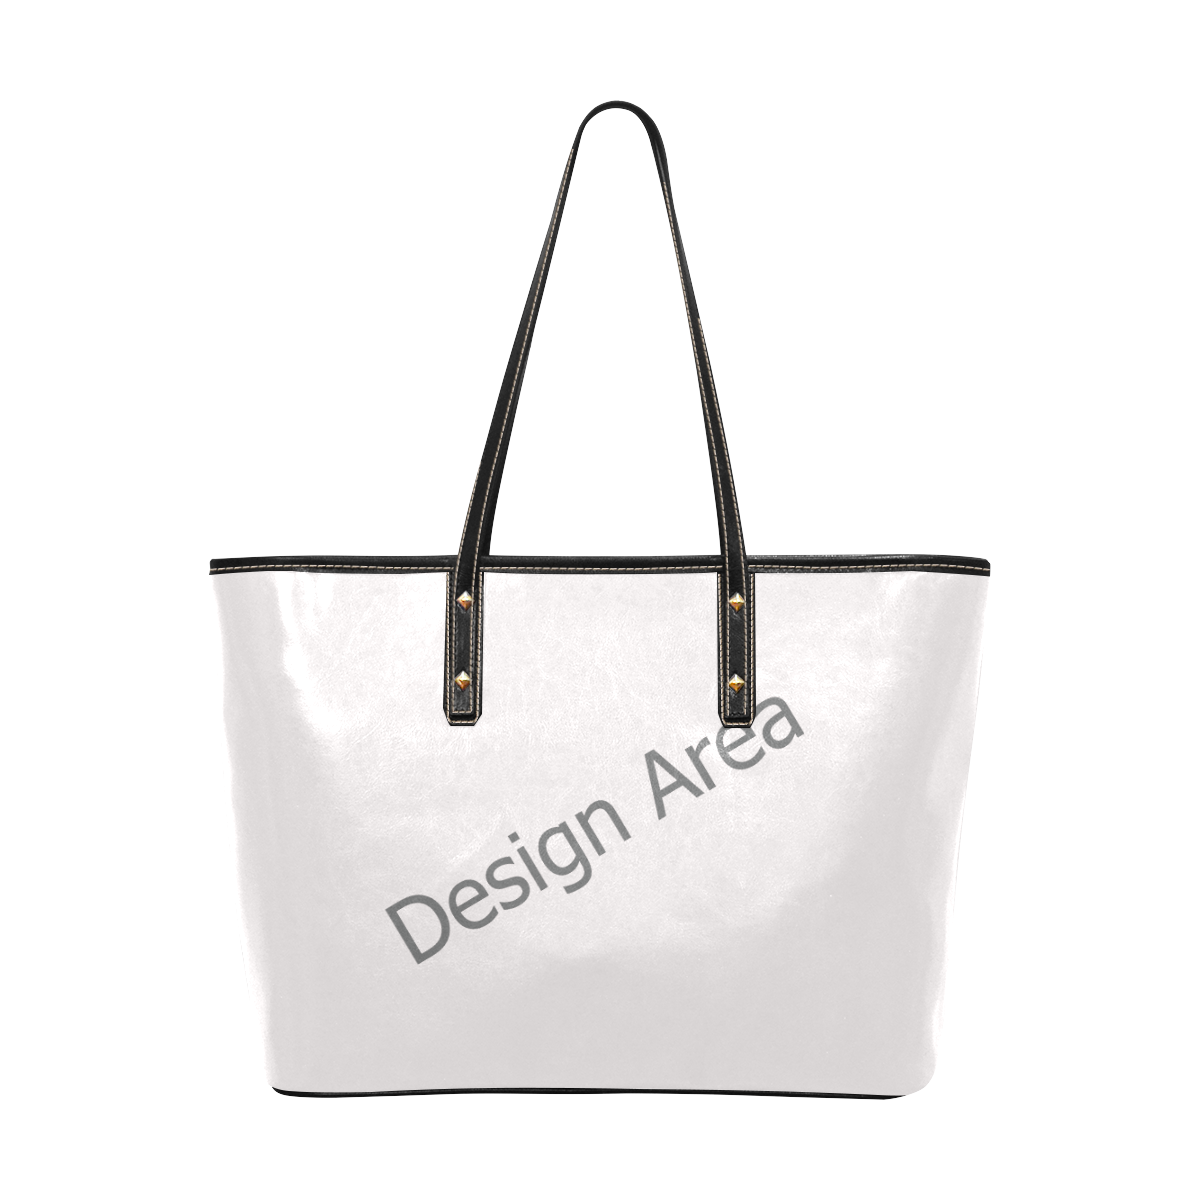 Chic Leather Tote Bag (Model 1709)